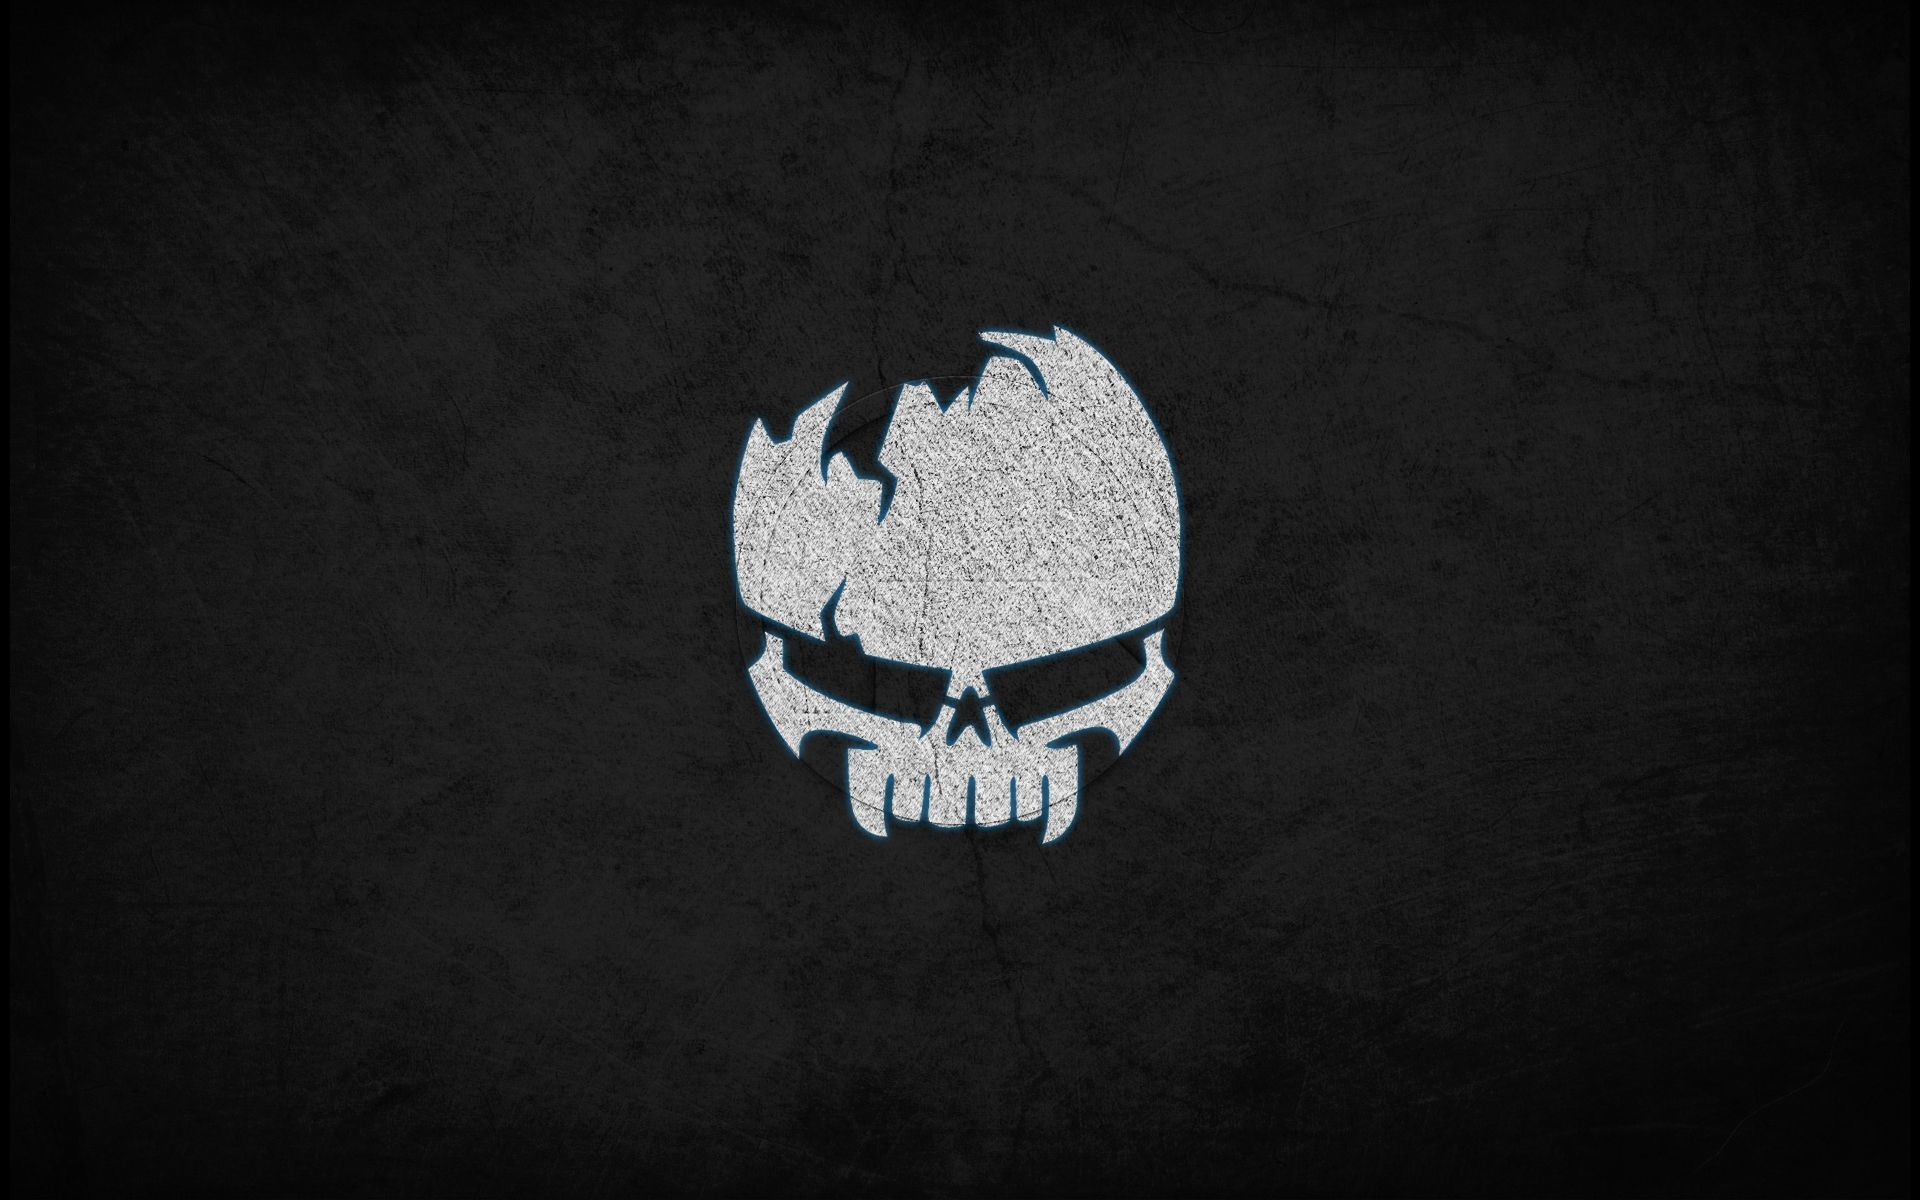 1920x1200 Cool Skull Wallpaper HD 1920×1200 Cool HD Skull Wallpapers (47 Wallpapers) |